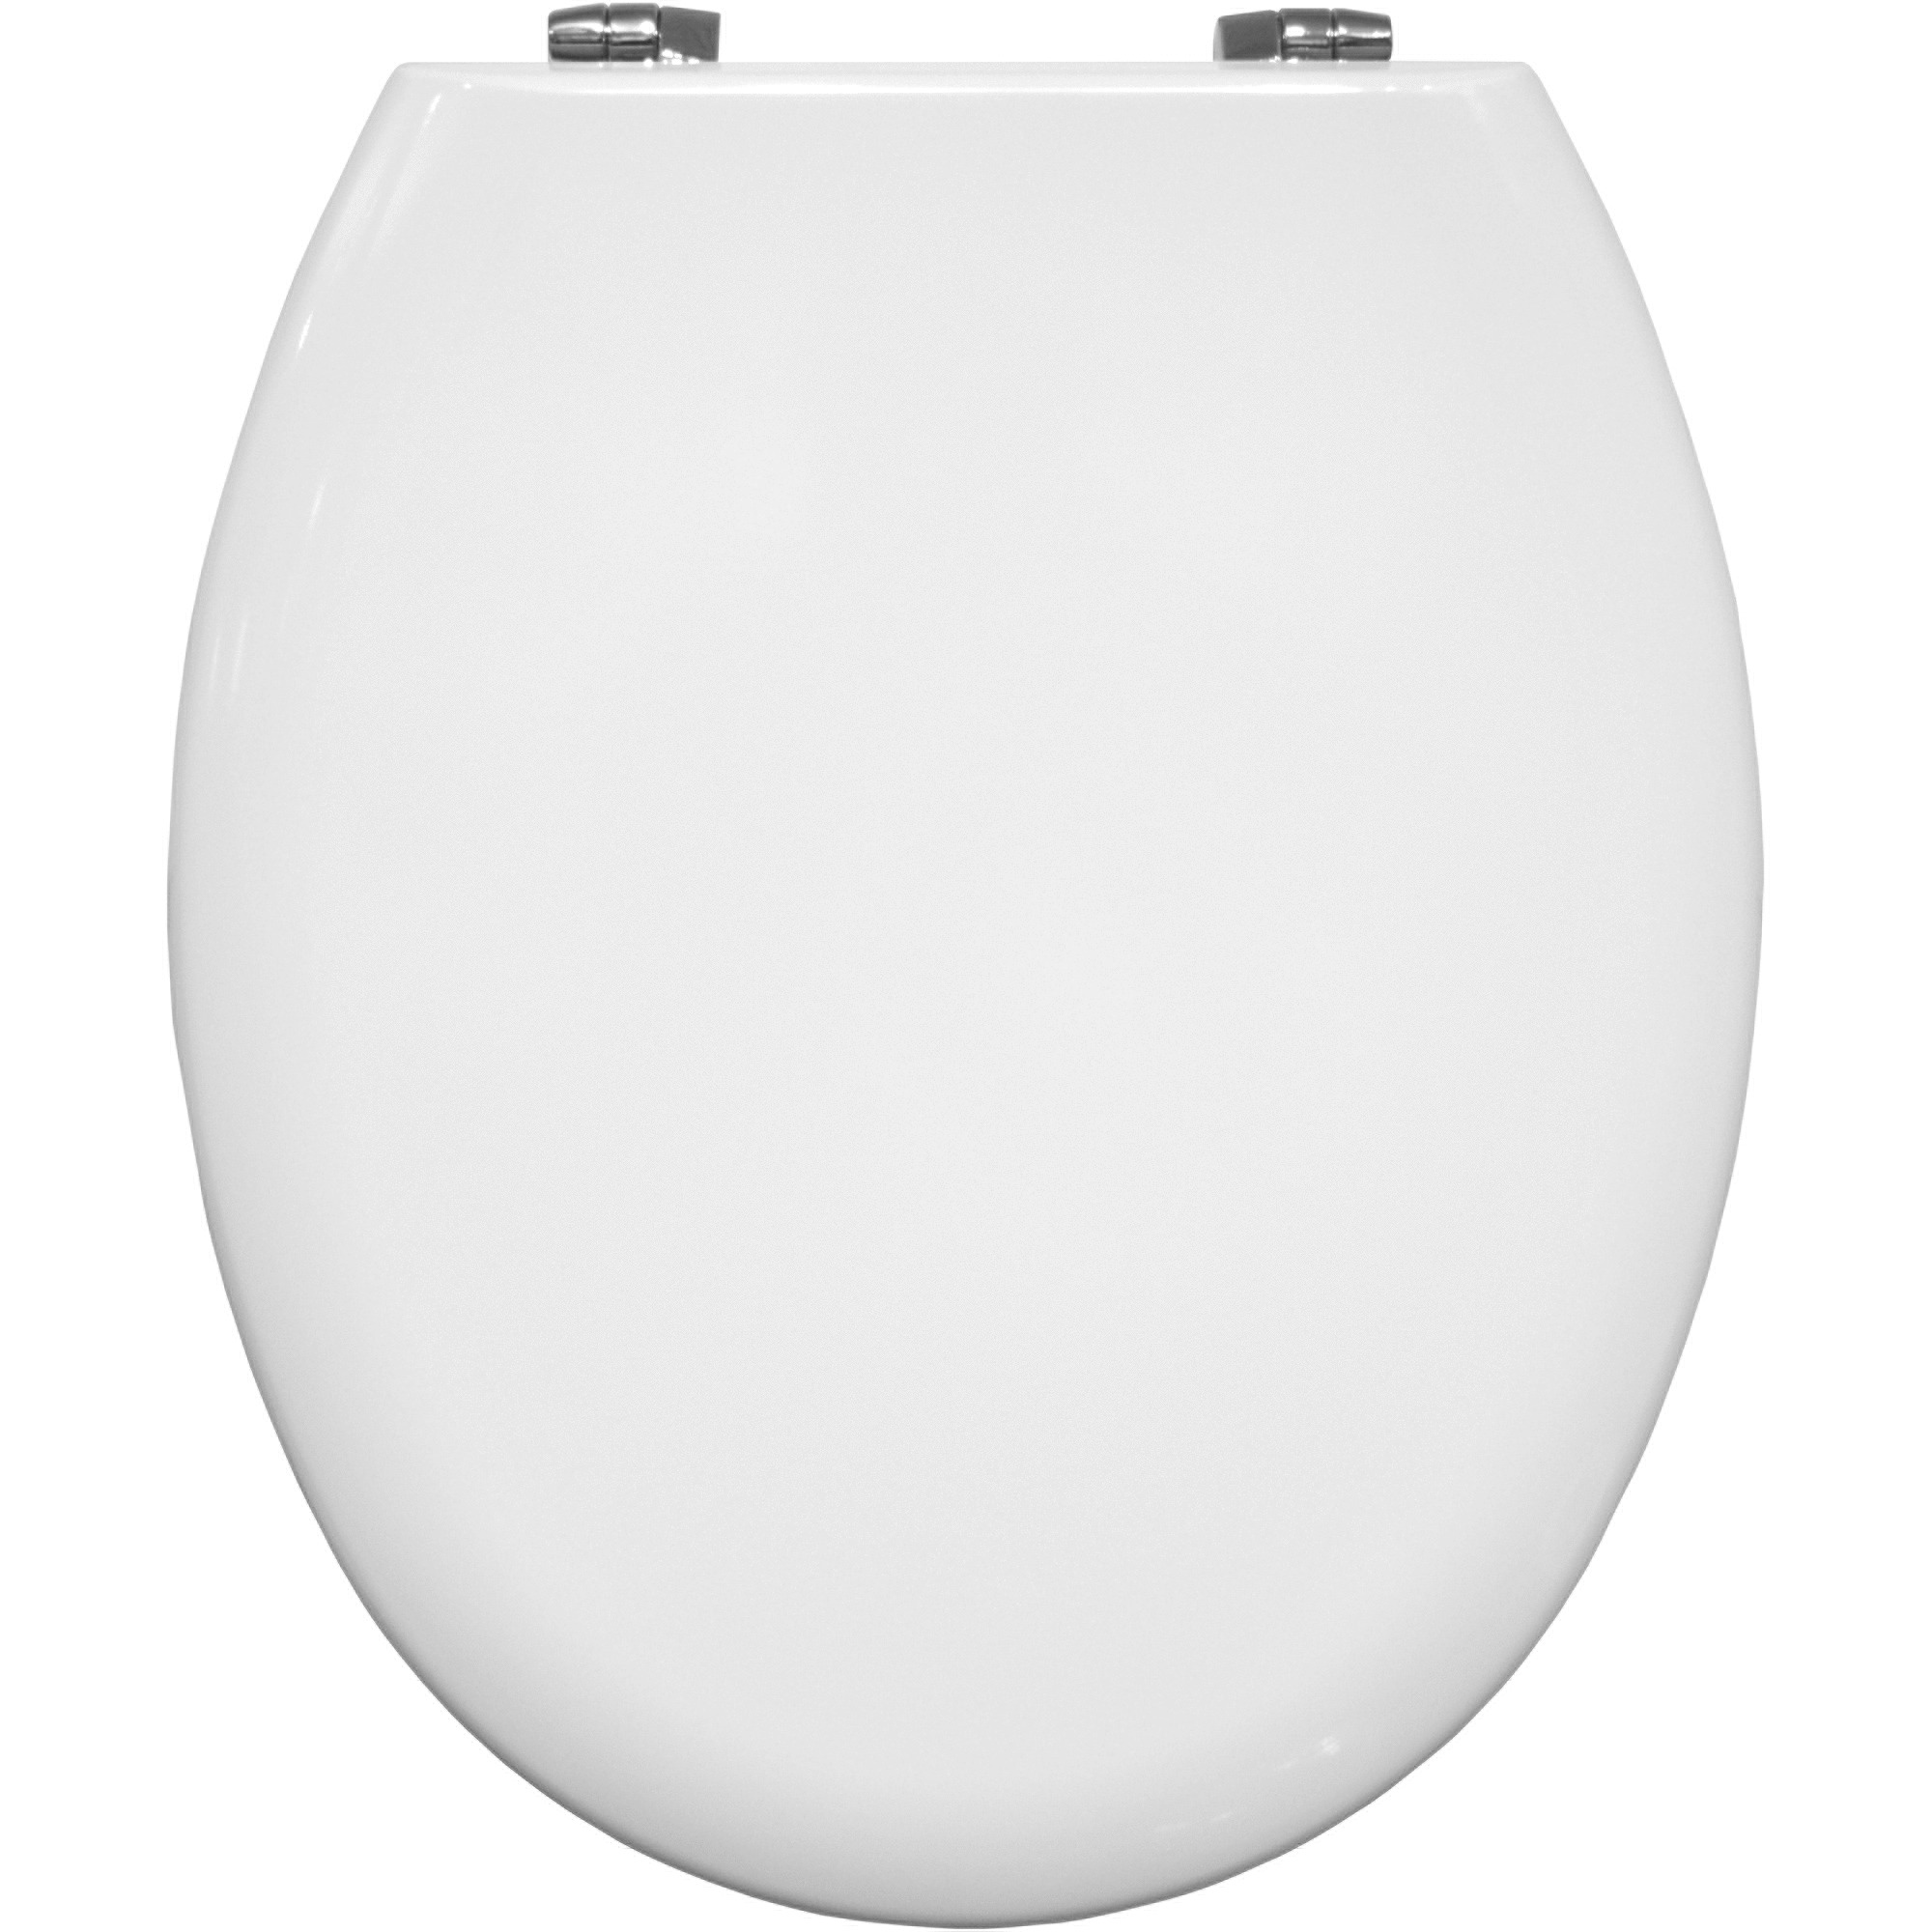 Bemis New York Sta Tite 174 Toiletzitting Met Softclose Wit